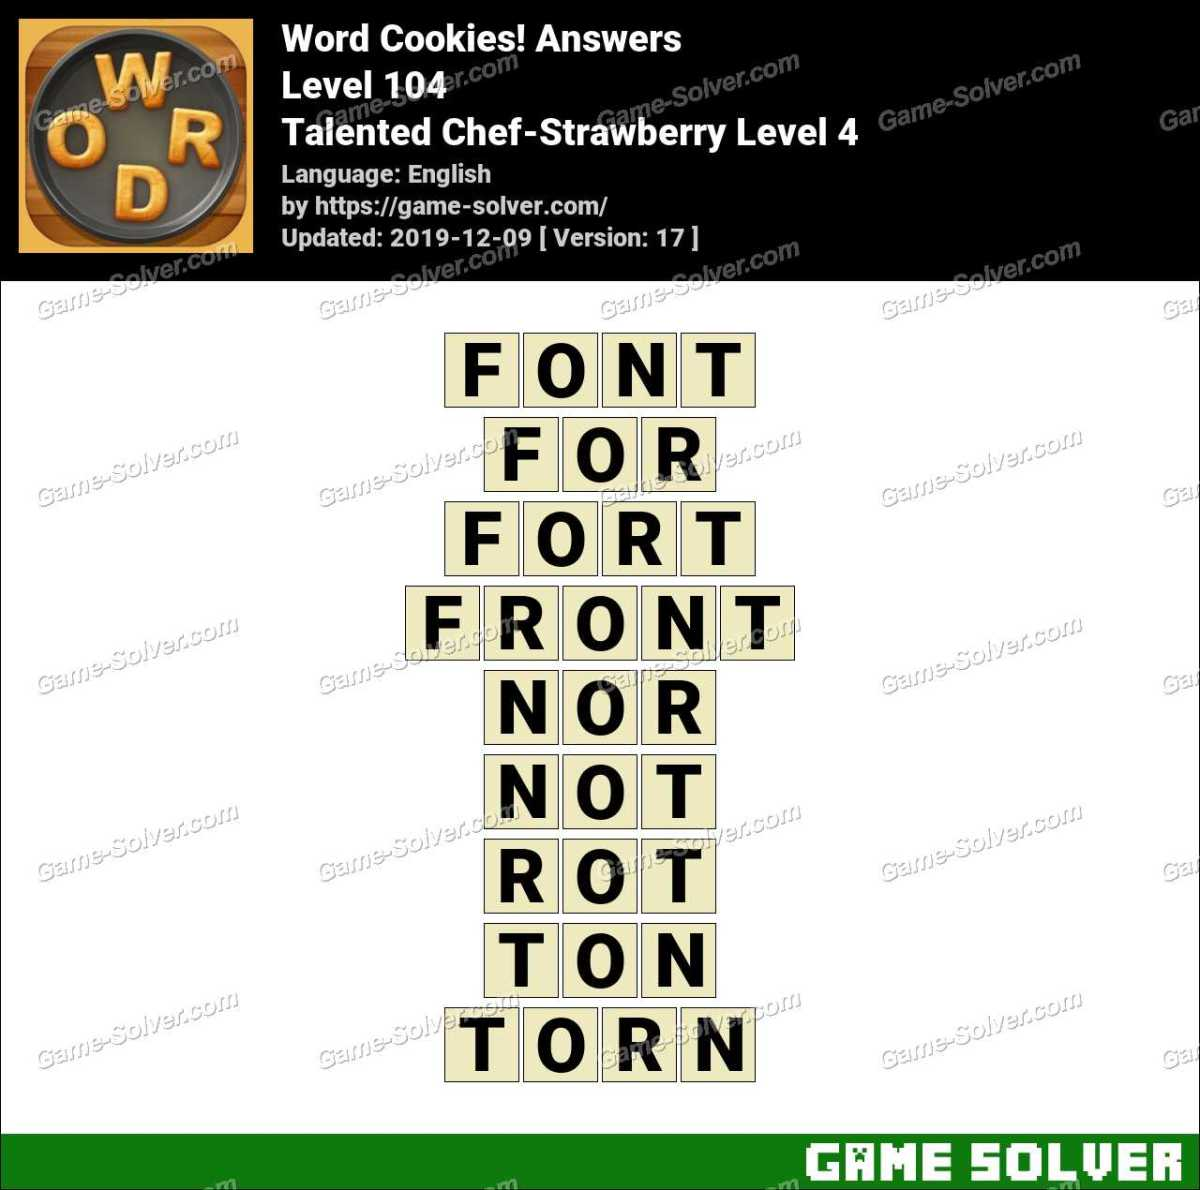 Word Cookies Talented Chef-Strawberry Level 4 Answers